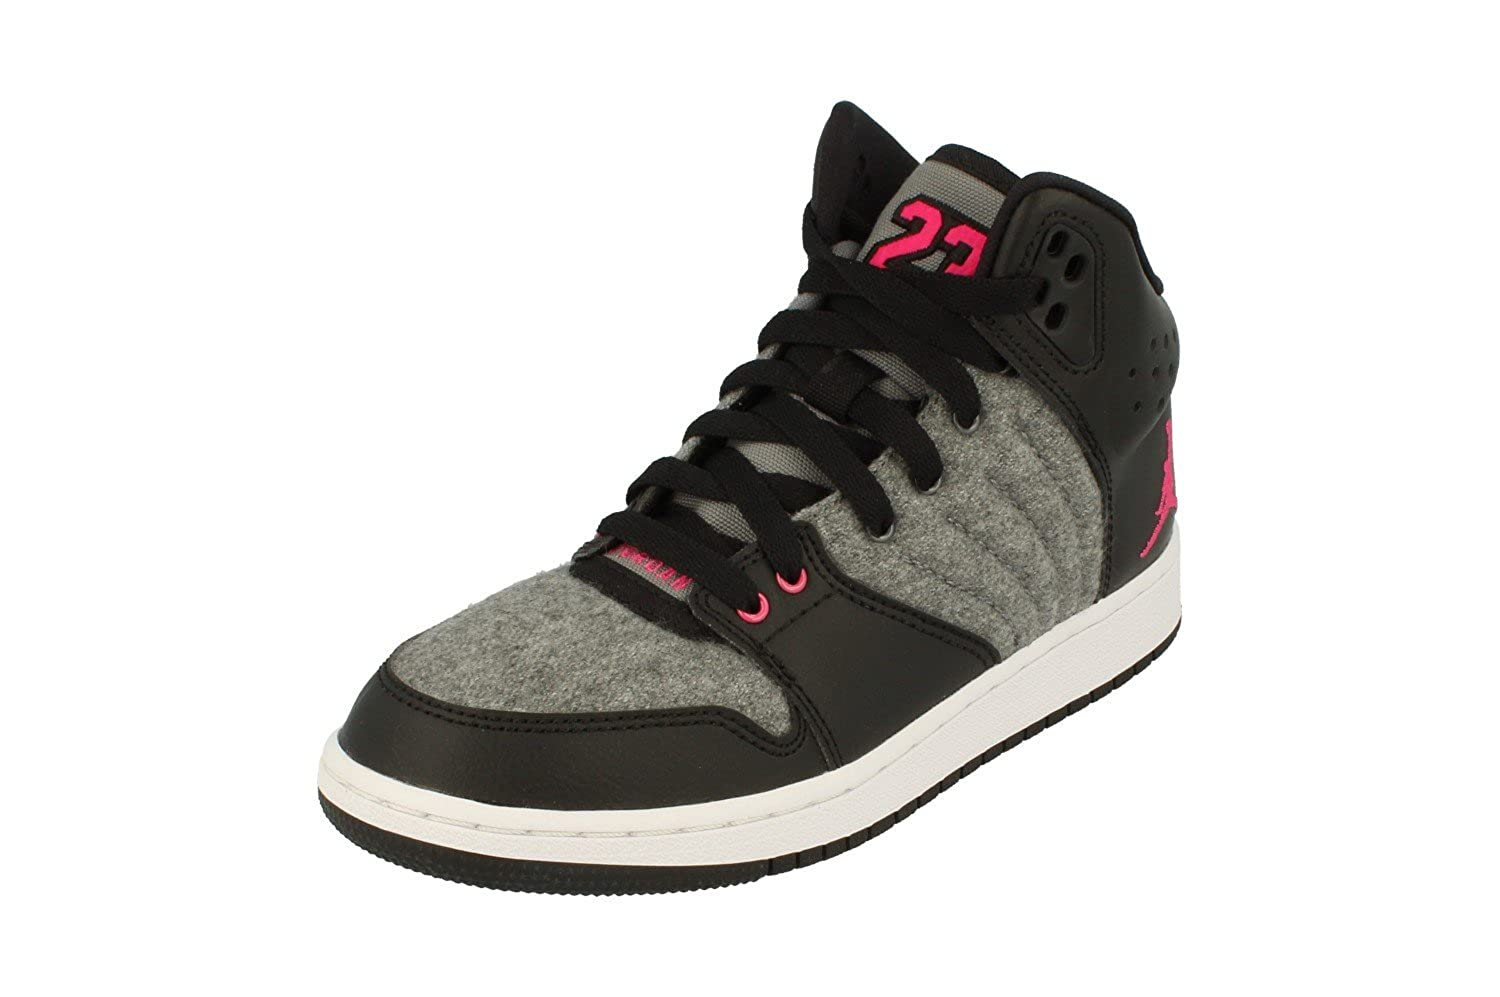 new concept af471 7803d Amazon.com   Nike Air Jordan 1 Flight 4 Prem GG Hi Top Trainers 828245 Sneakers  Shoes   Sneakers